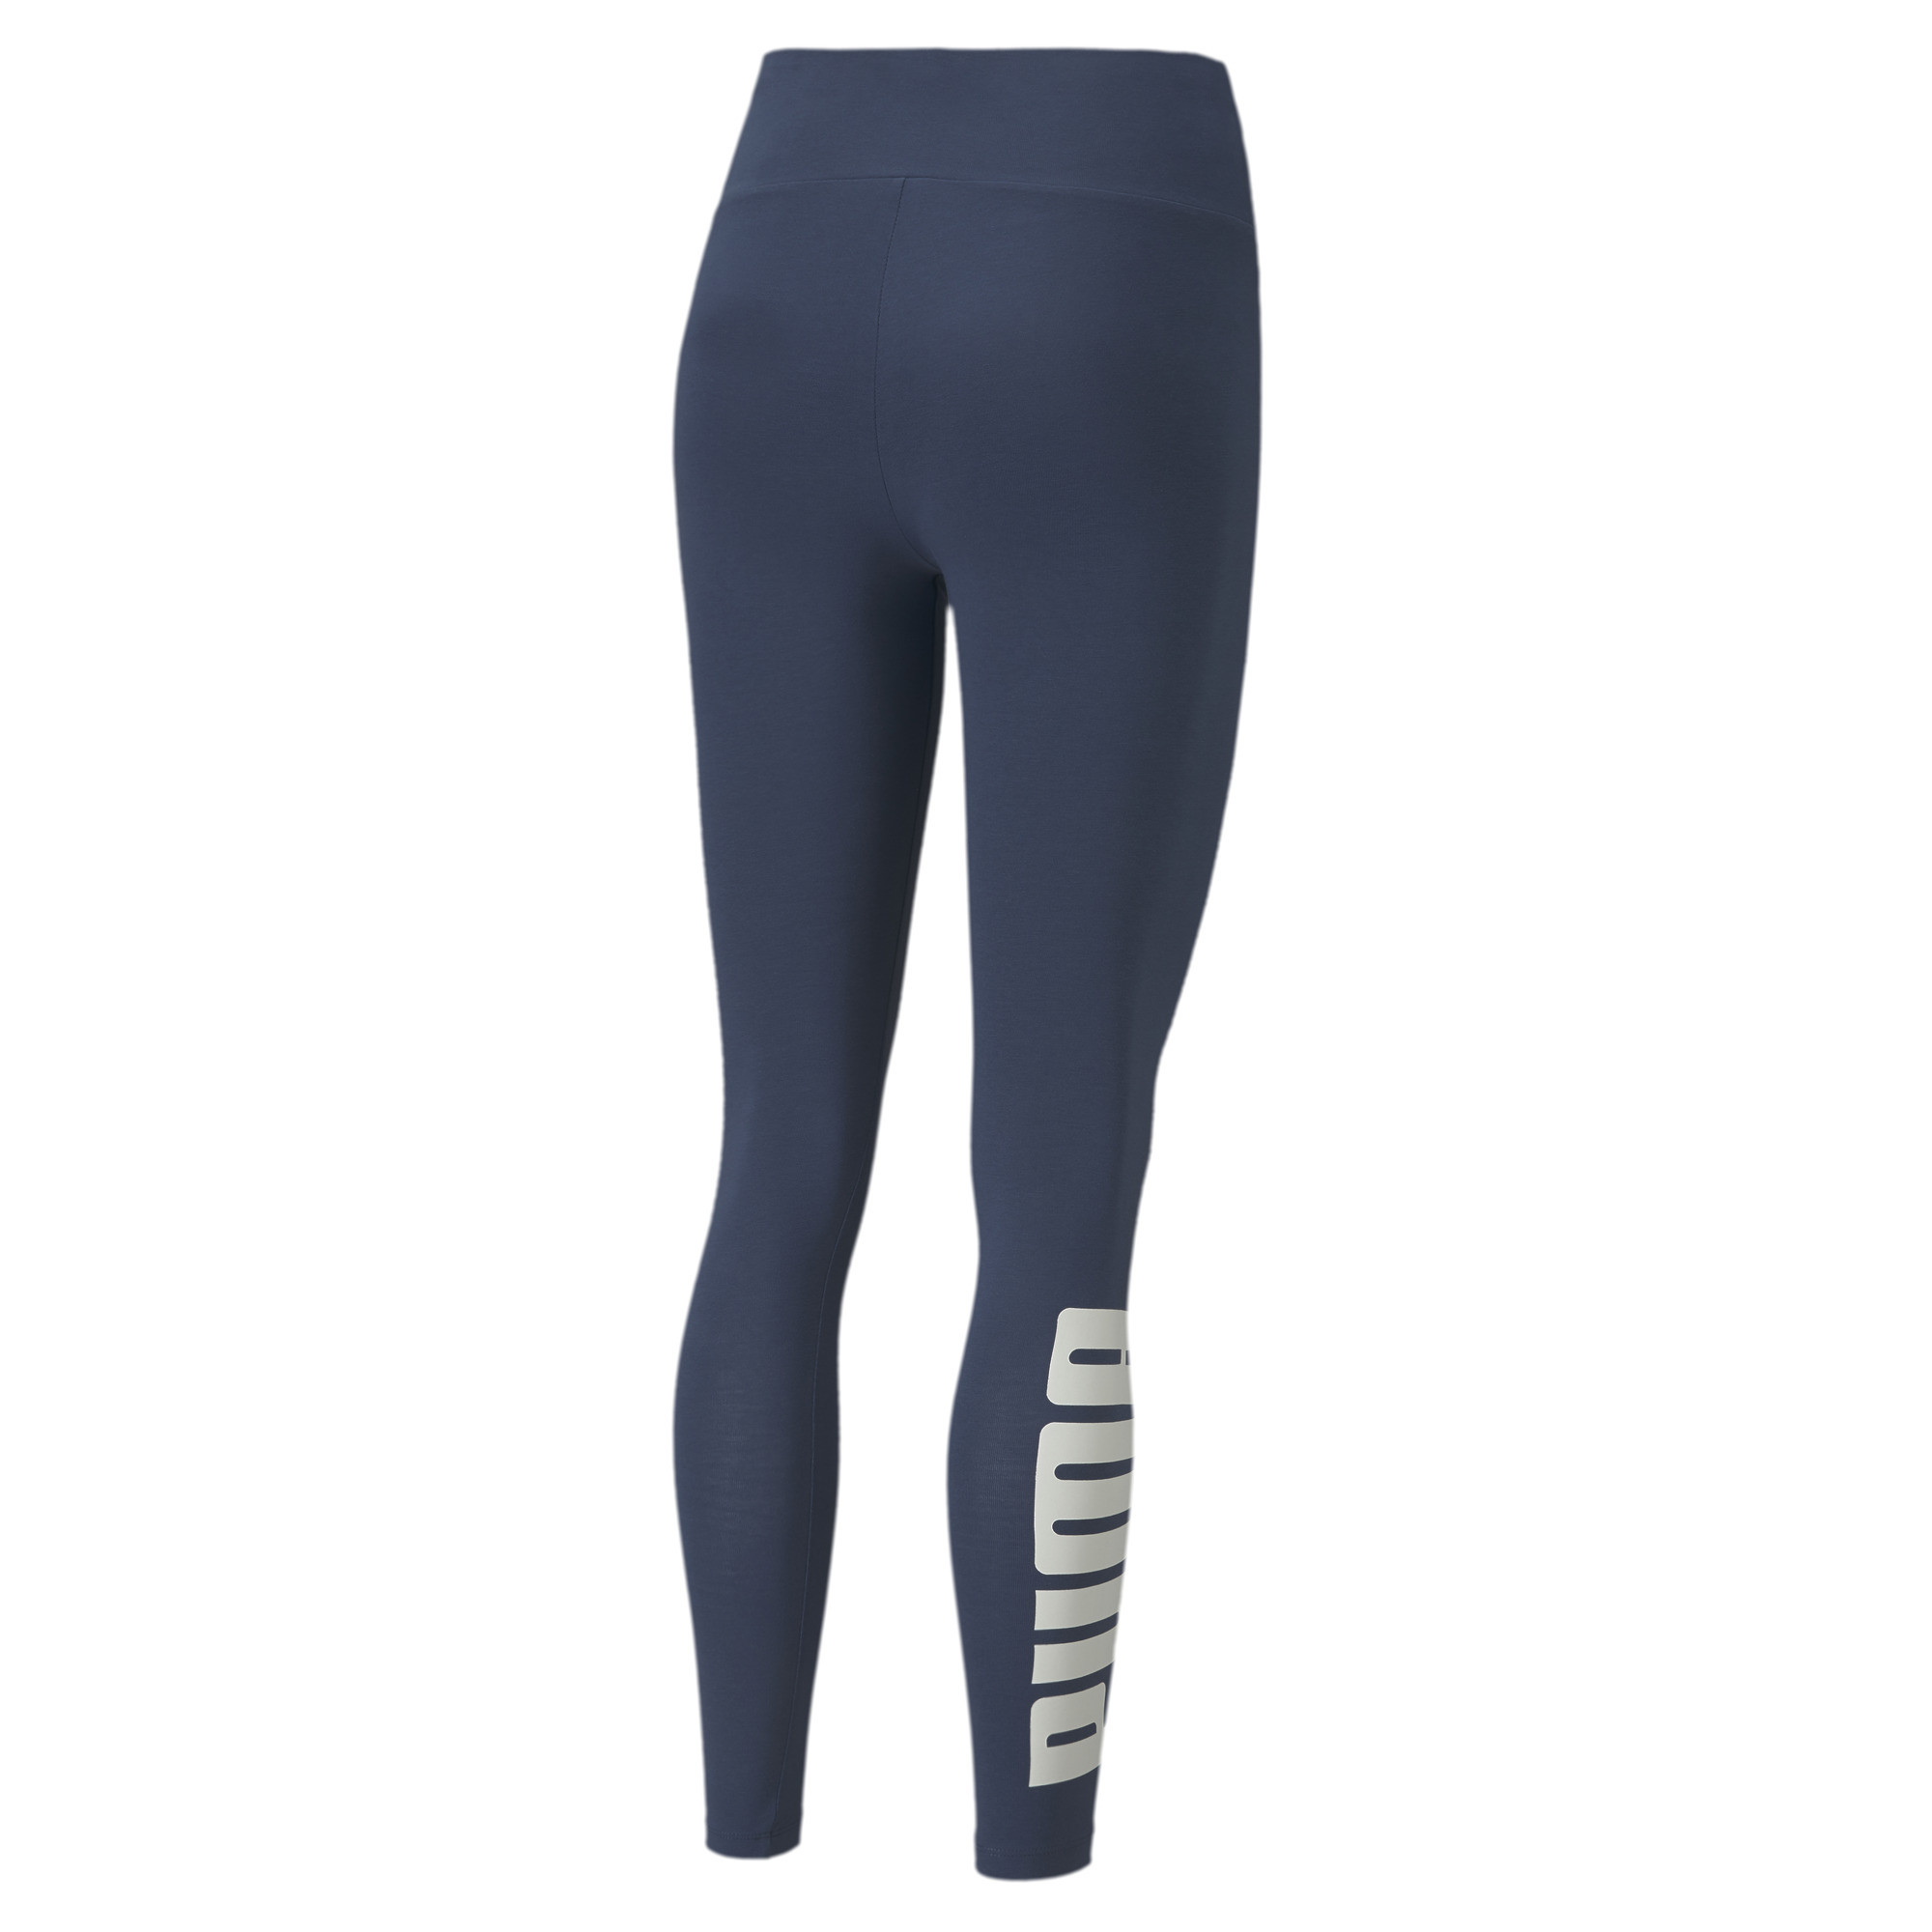 PUMA-Rebel-Women-039-s-Leggings-Women-Basics thumbnail 3